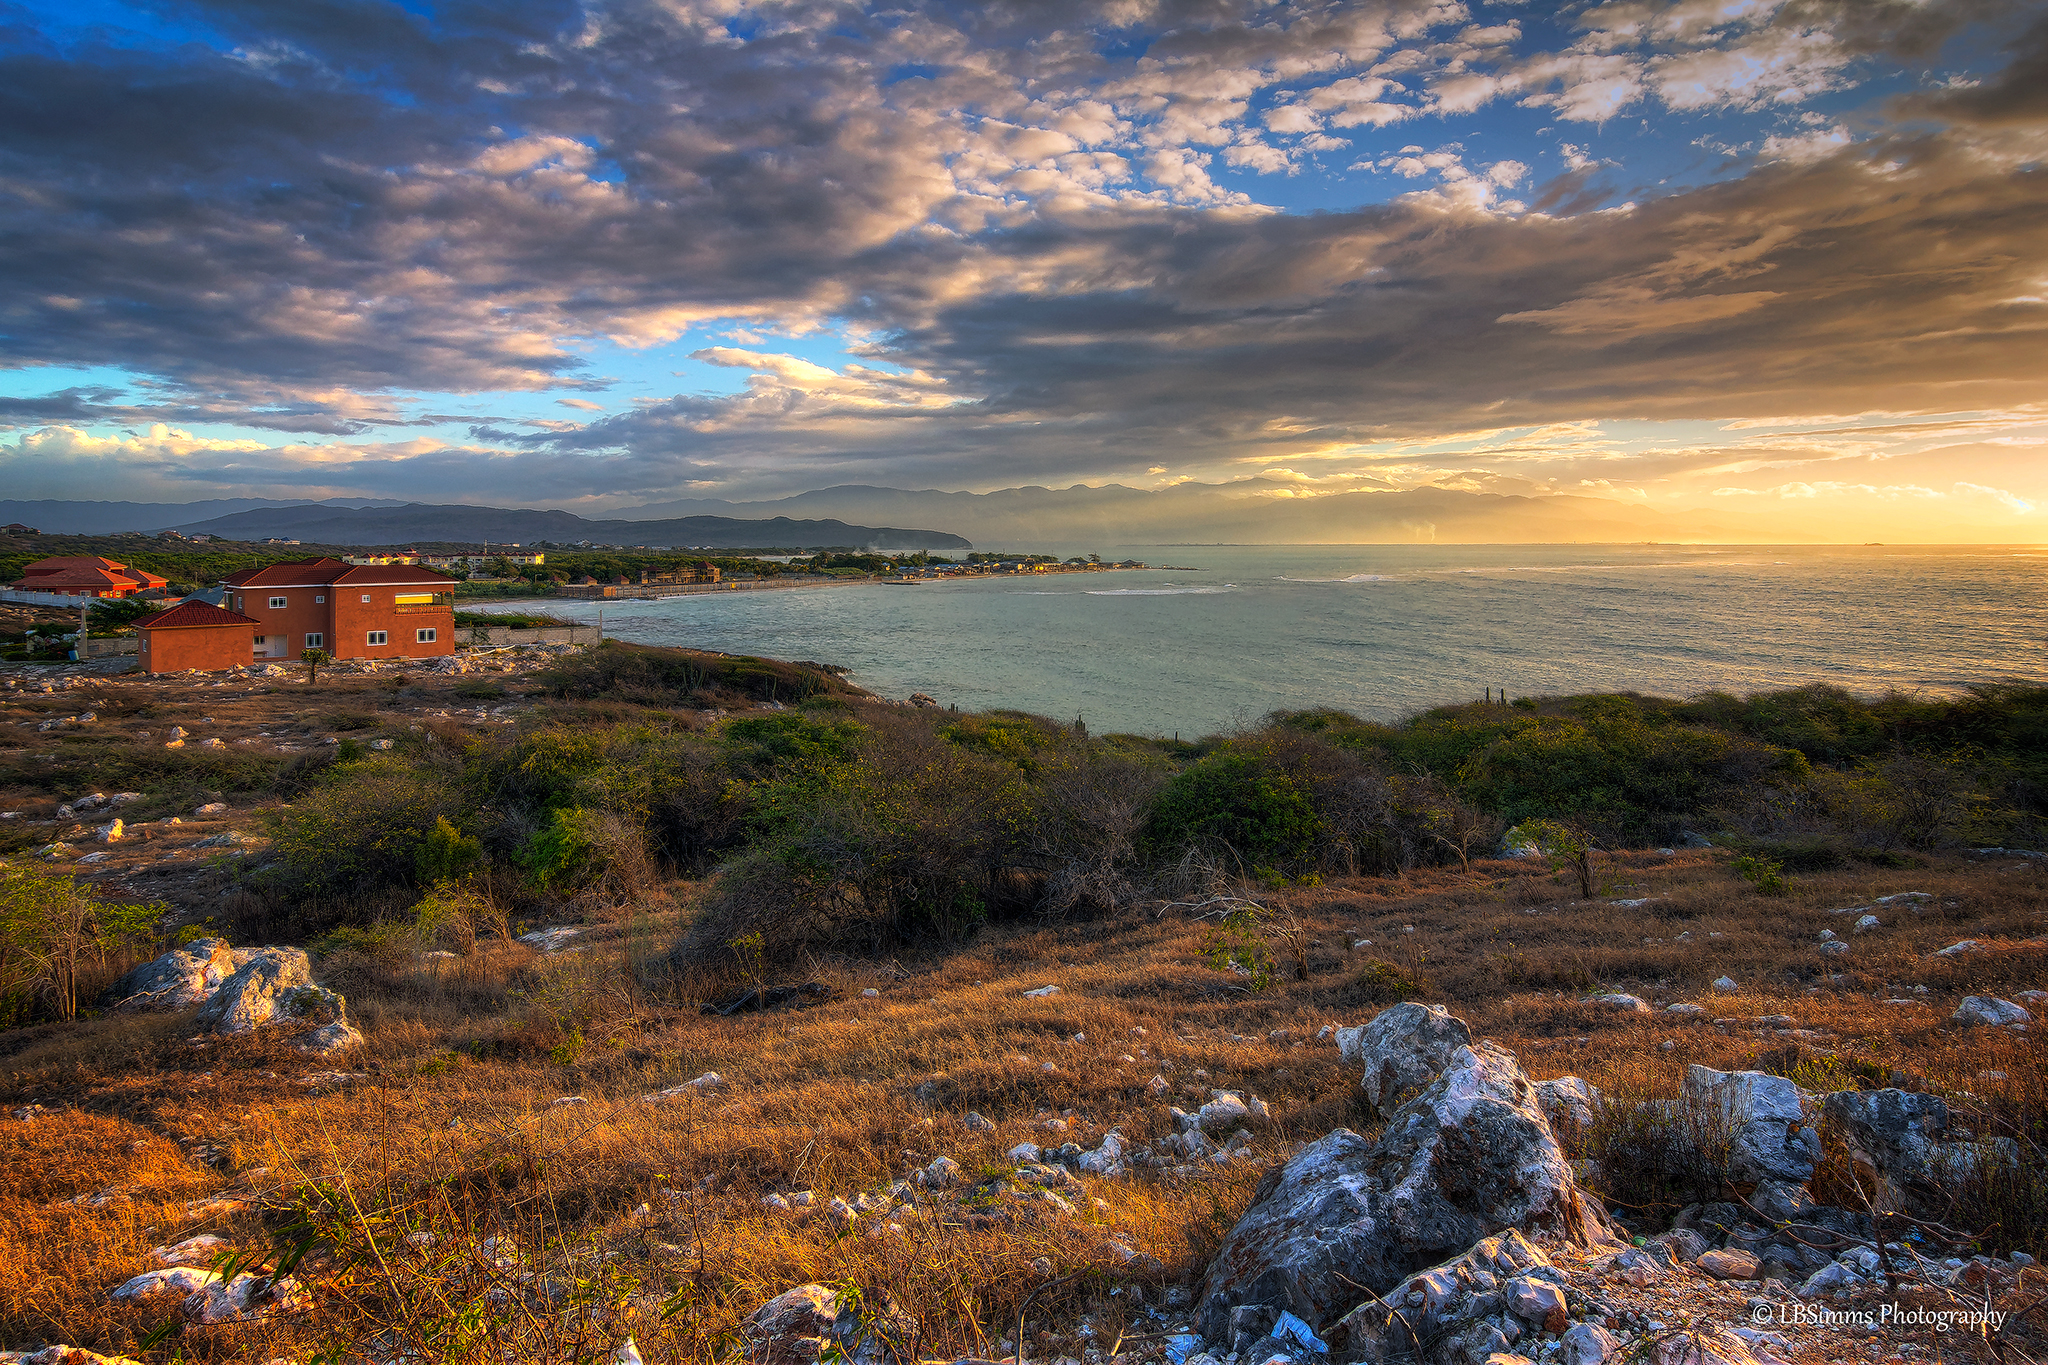 Early morning view from Hellshire in St Catherine, Jamaica